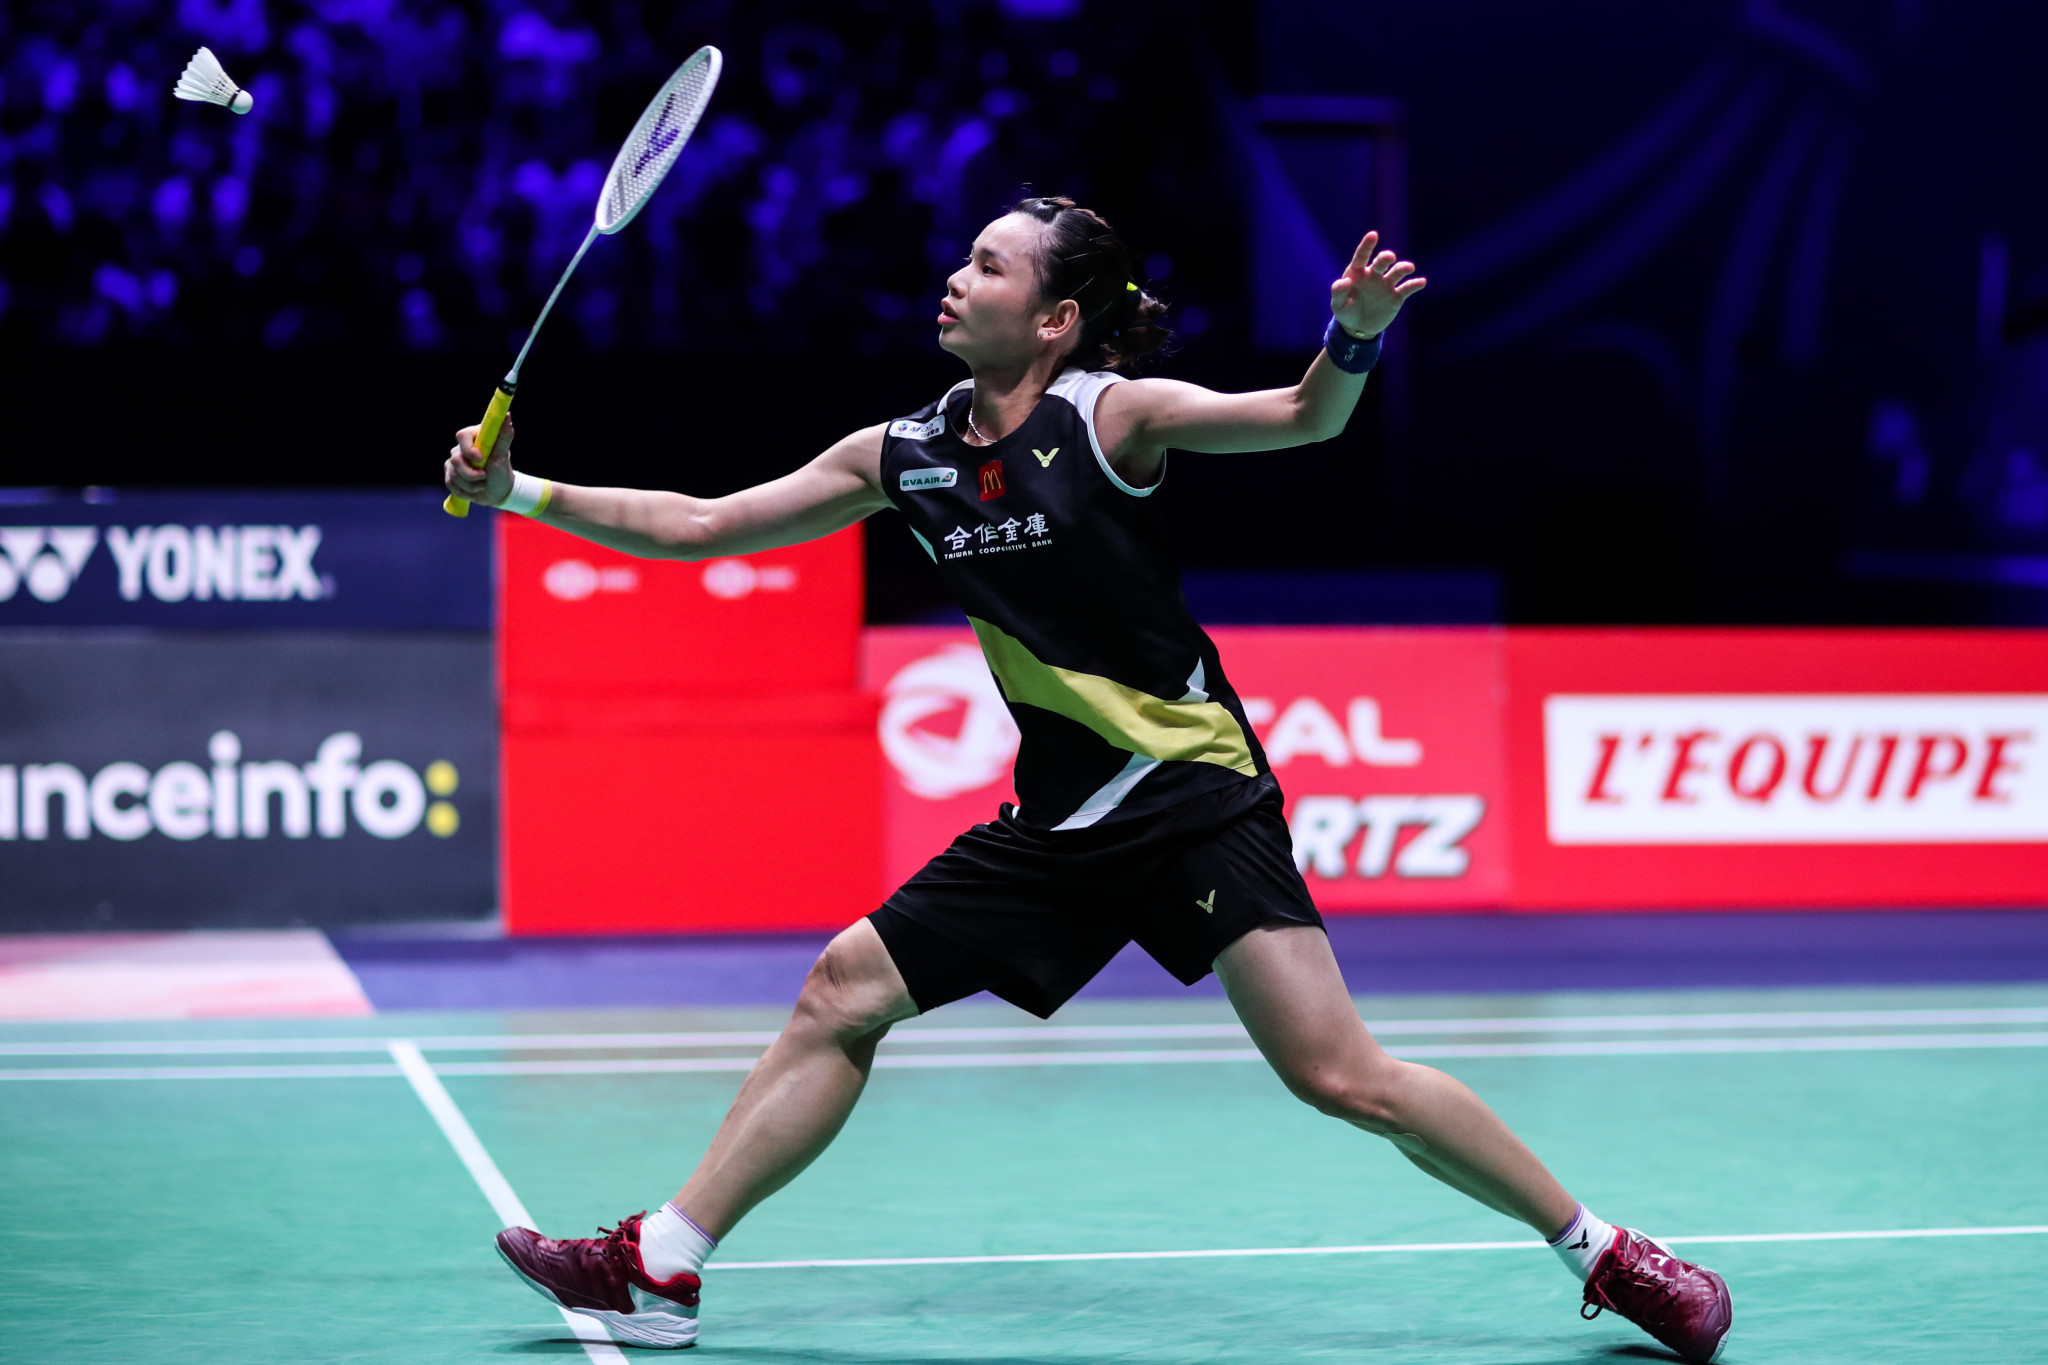 Chinese Taipei's Tai Tzu Ying is the top seed in the women's singles event ©Getty Images